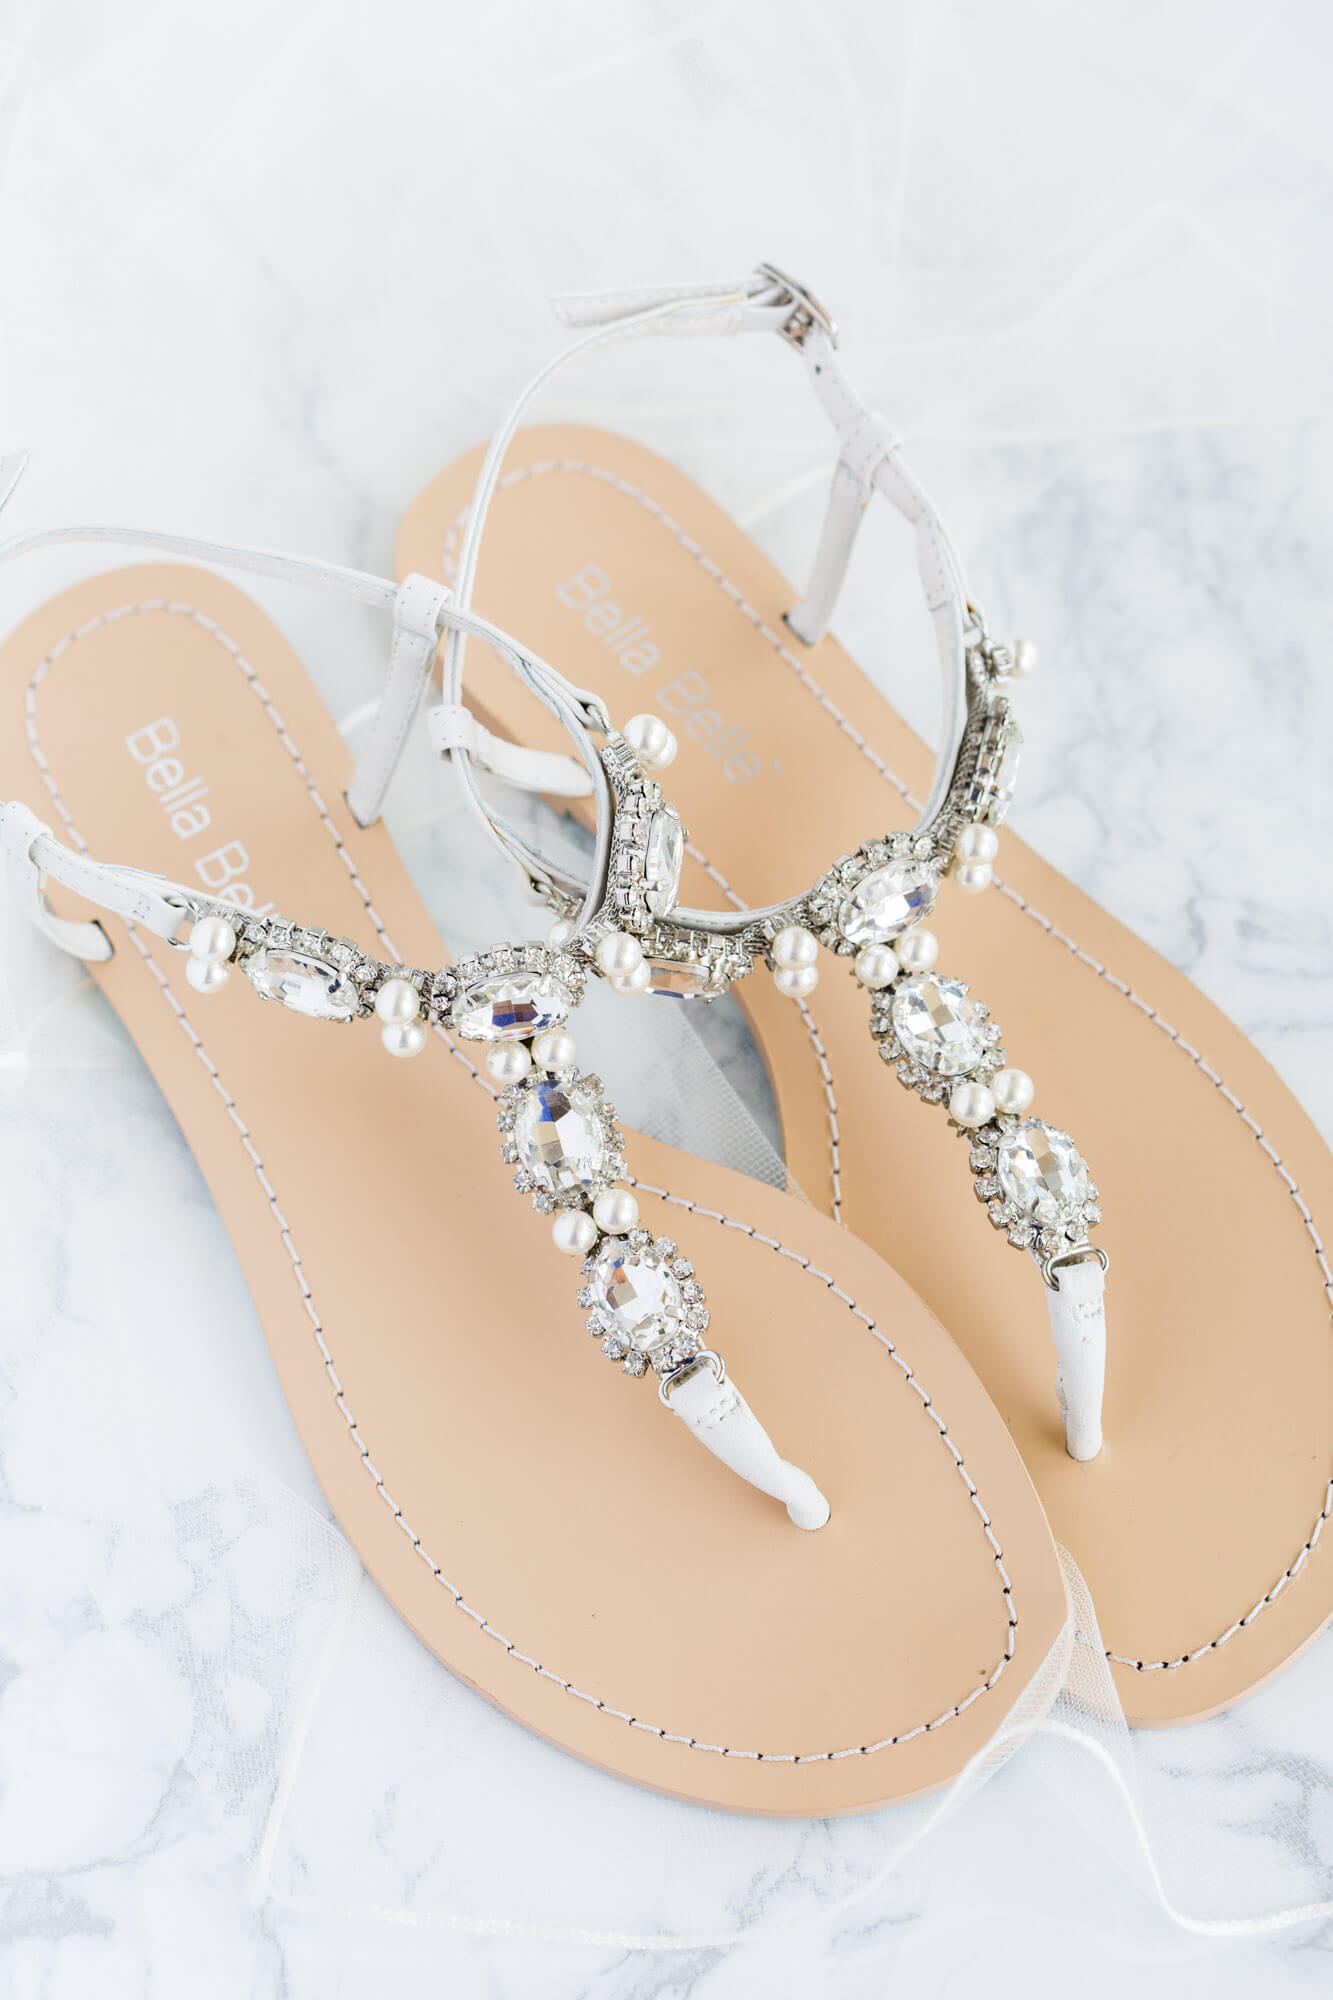 Bella Belle beach wedding shoes silver wedding sandals